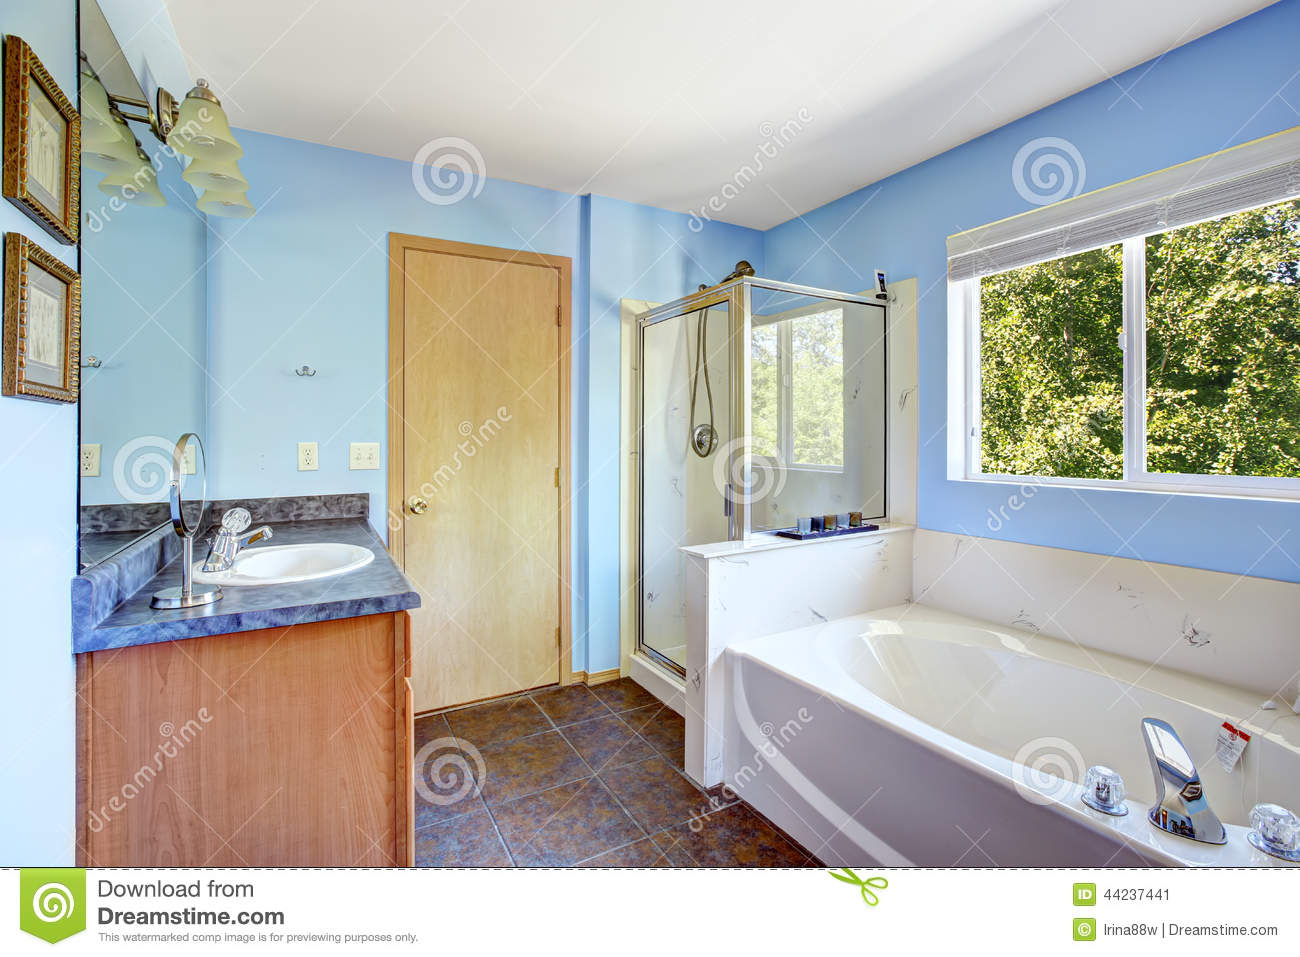 Light blue and white bathroom - Very Bright Bathroom In Light Blue Color